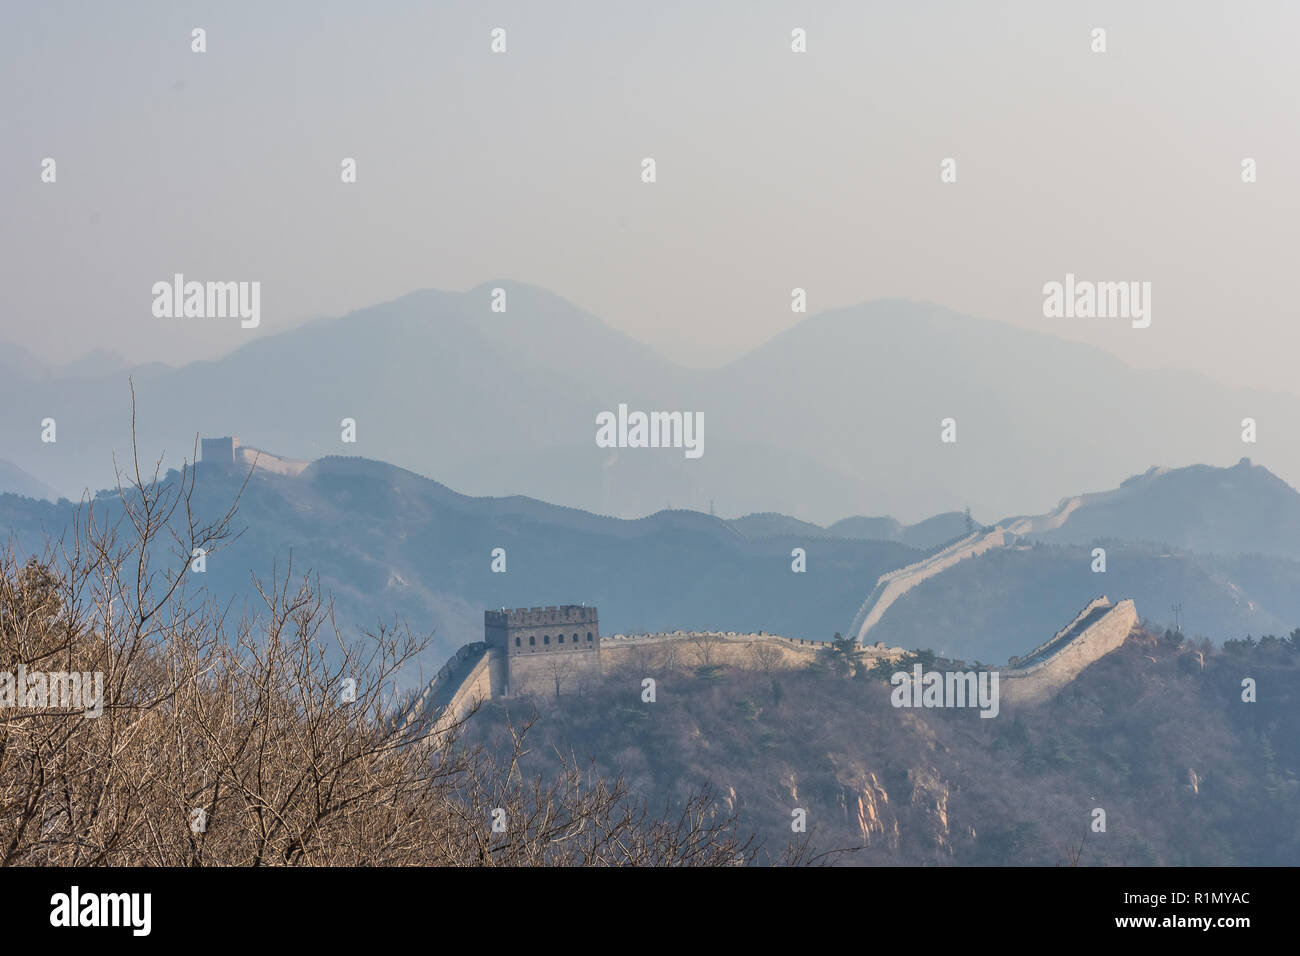 how to get to great wall of china badaling